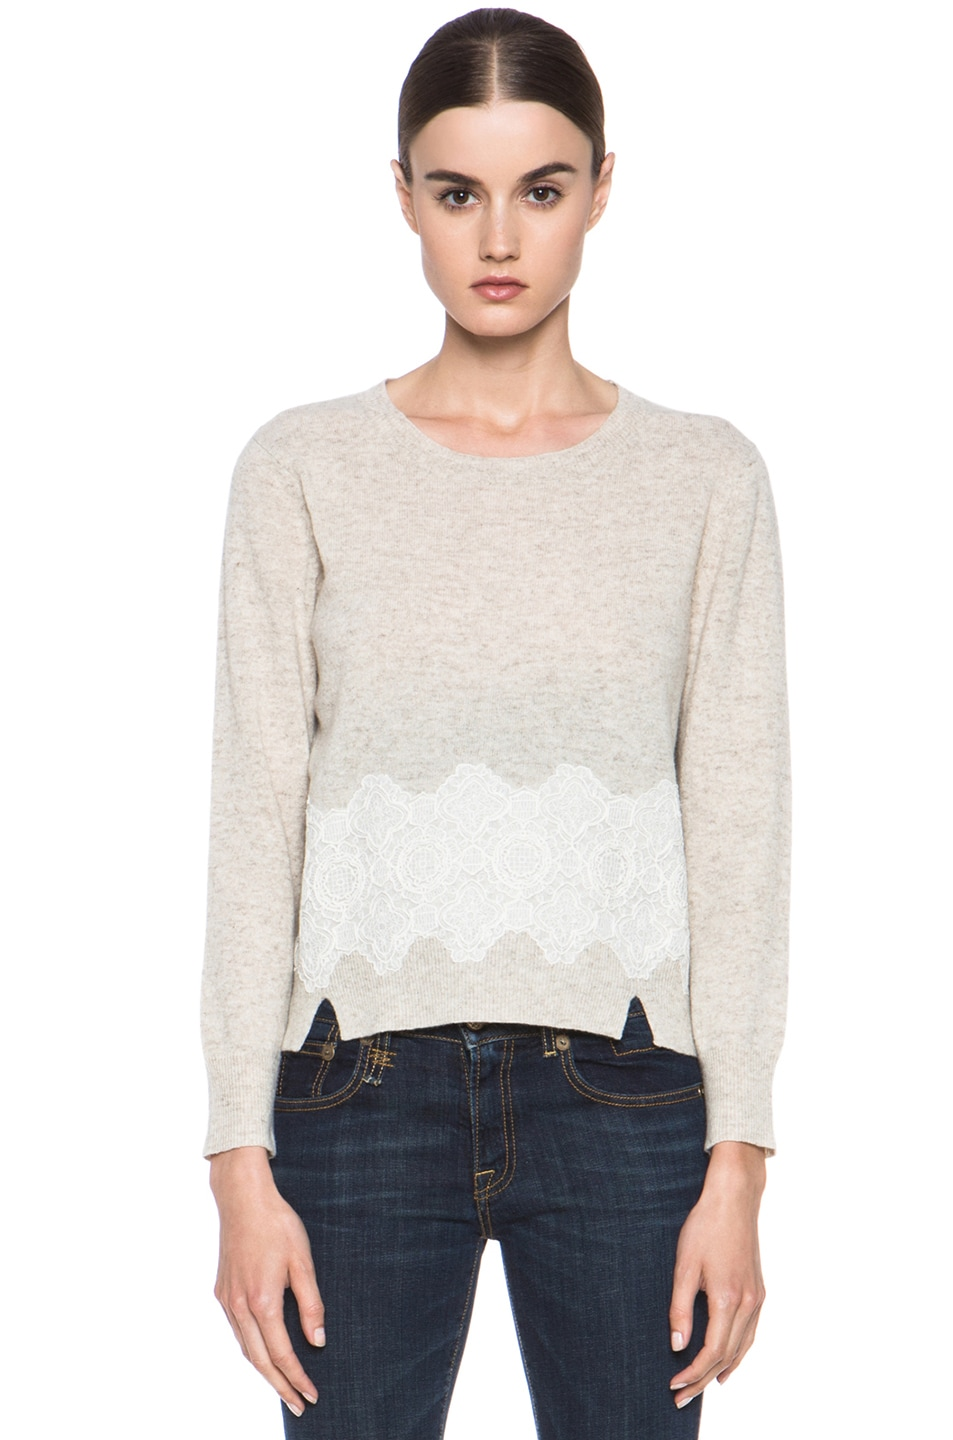 Image 1 of Girl. by Band of Outsiders Merino Wool Lace Pullover in Oatmeal